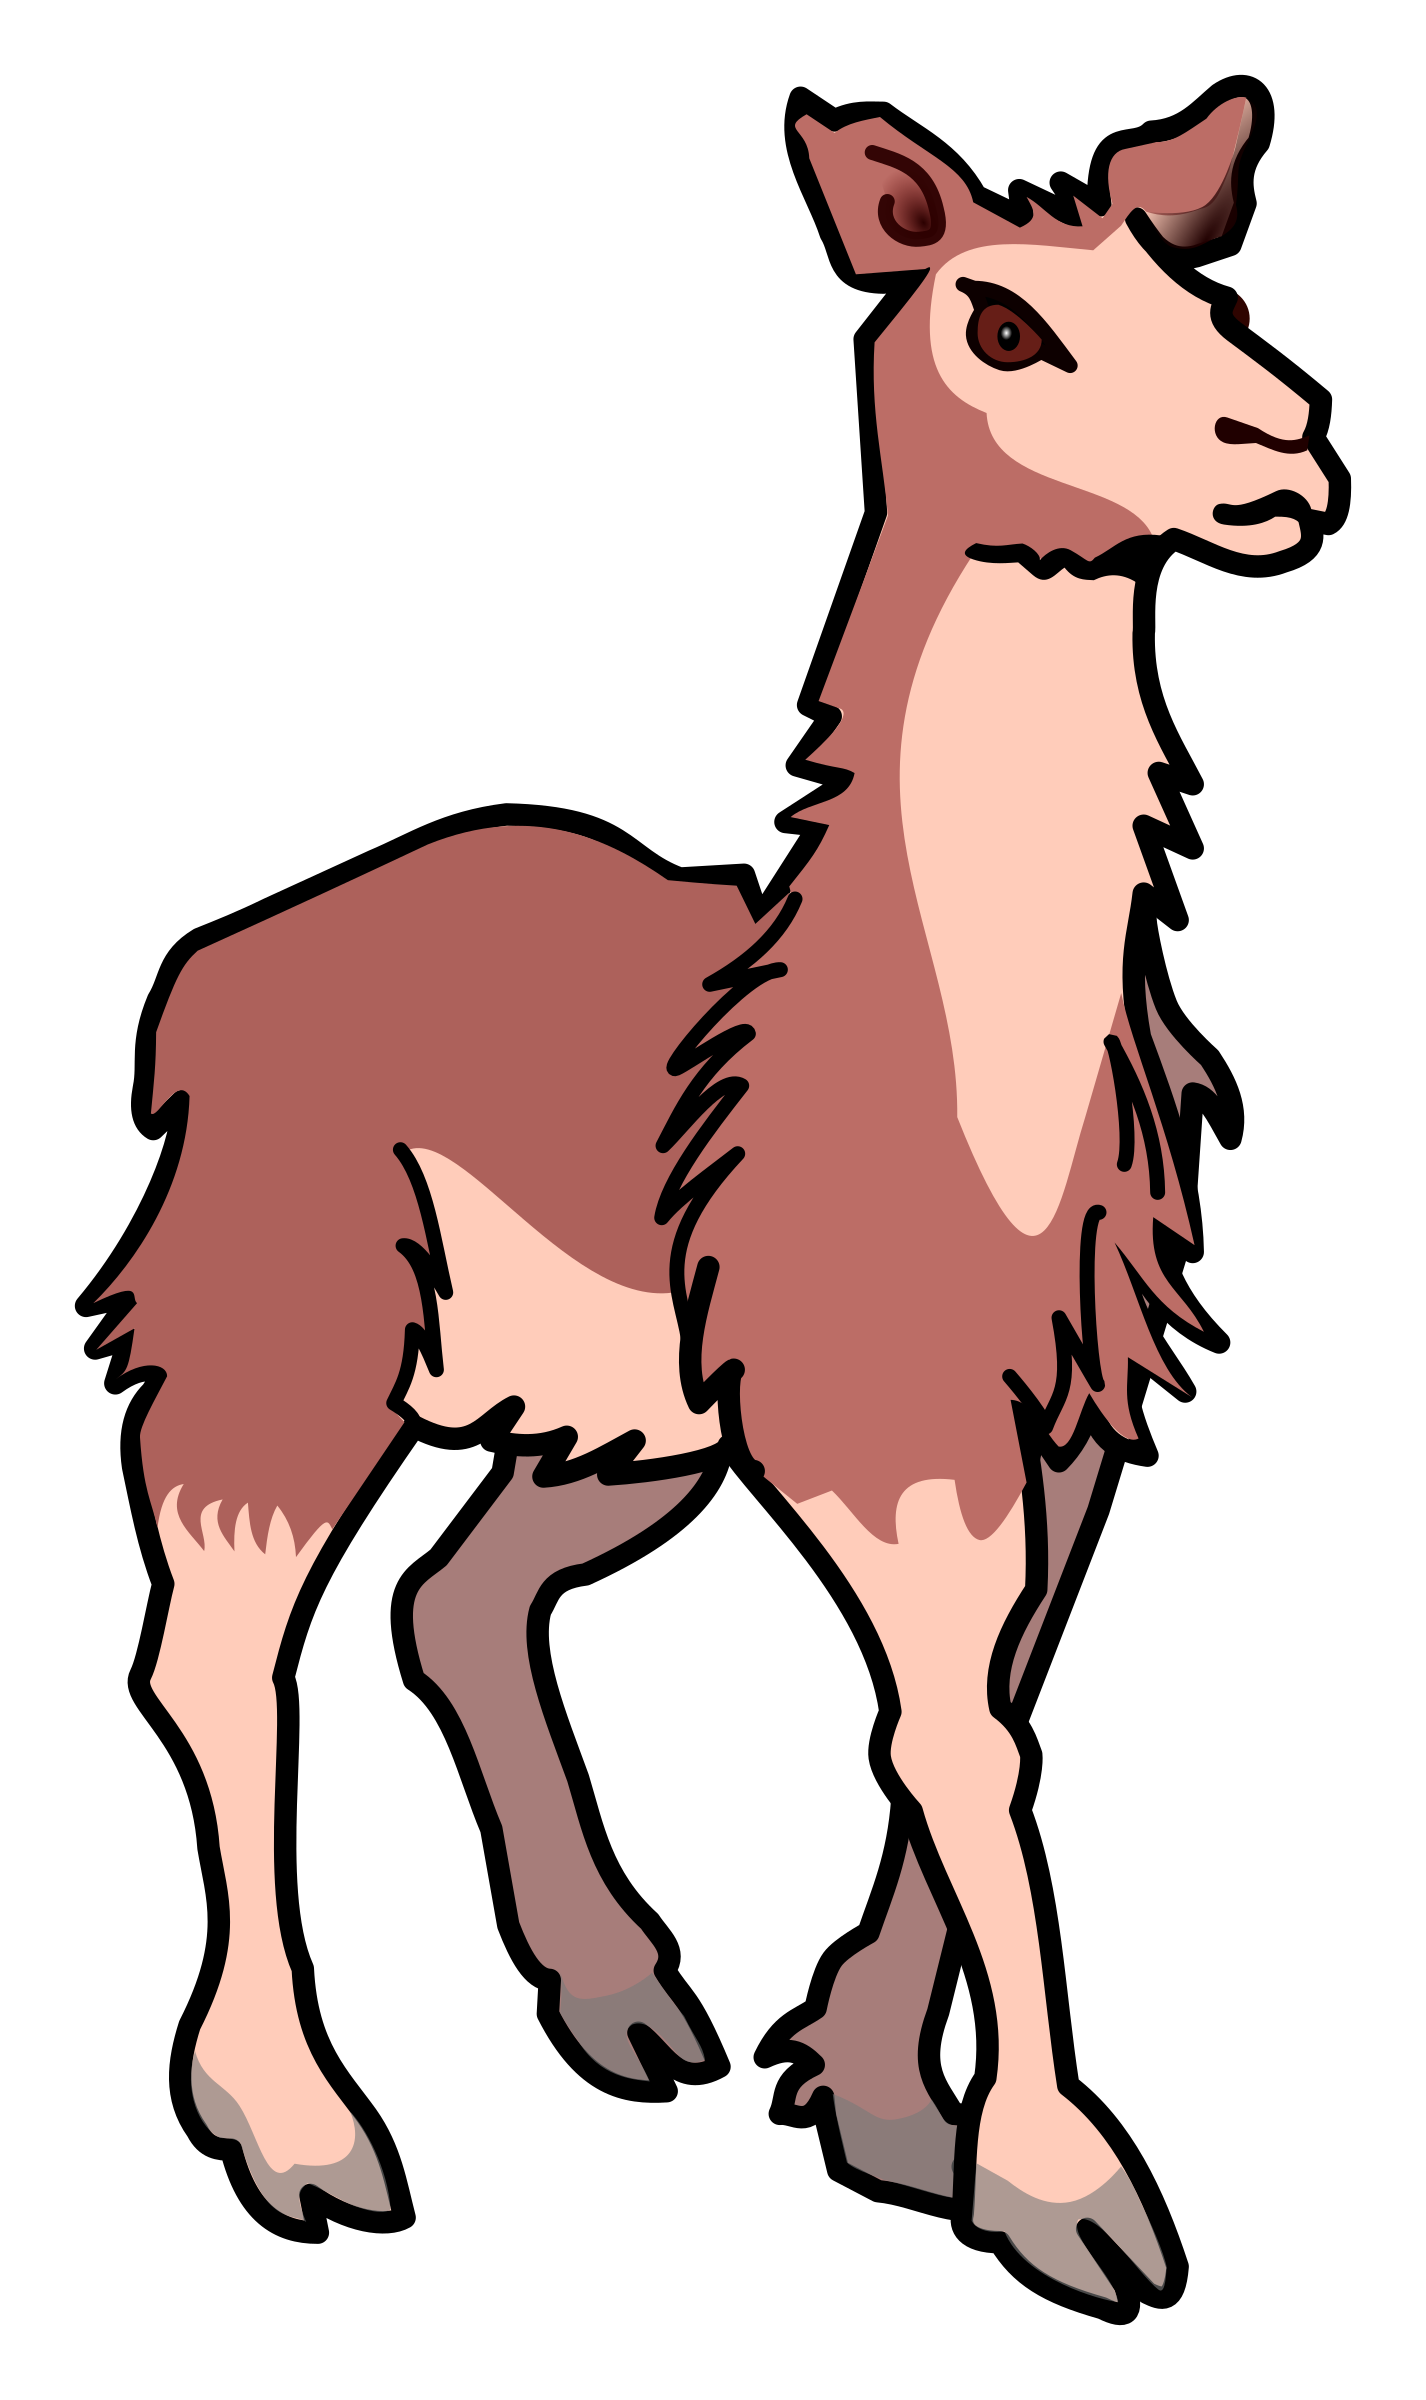 Llama cartoon png. Coloured icons free and